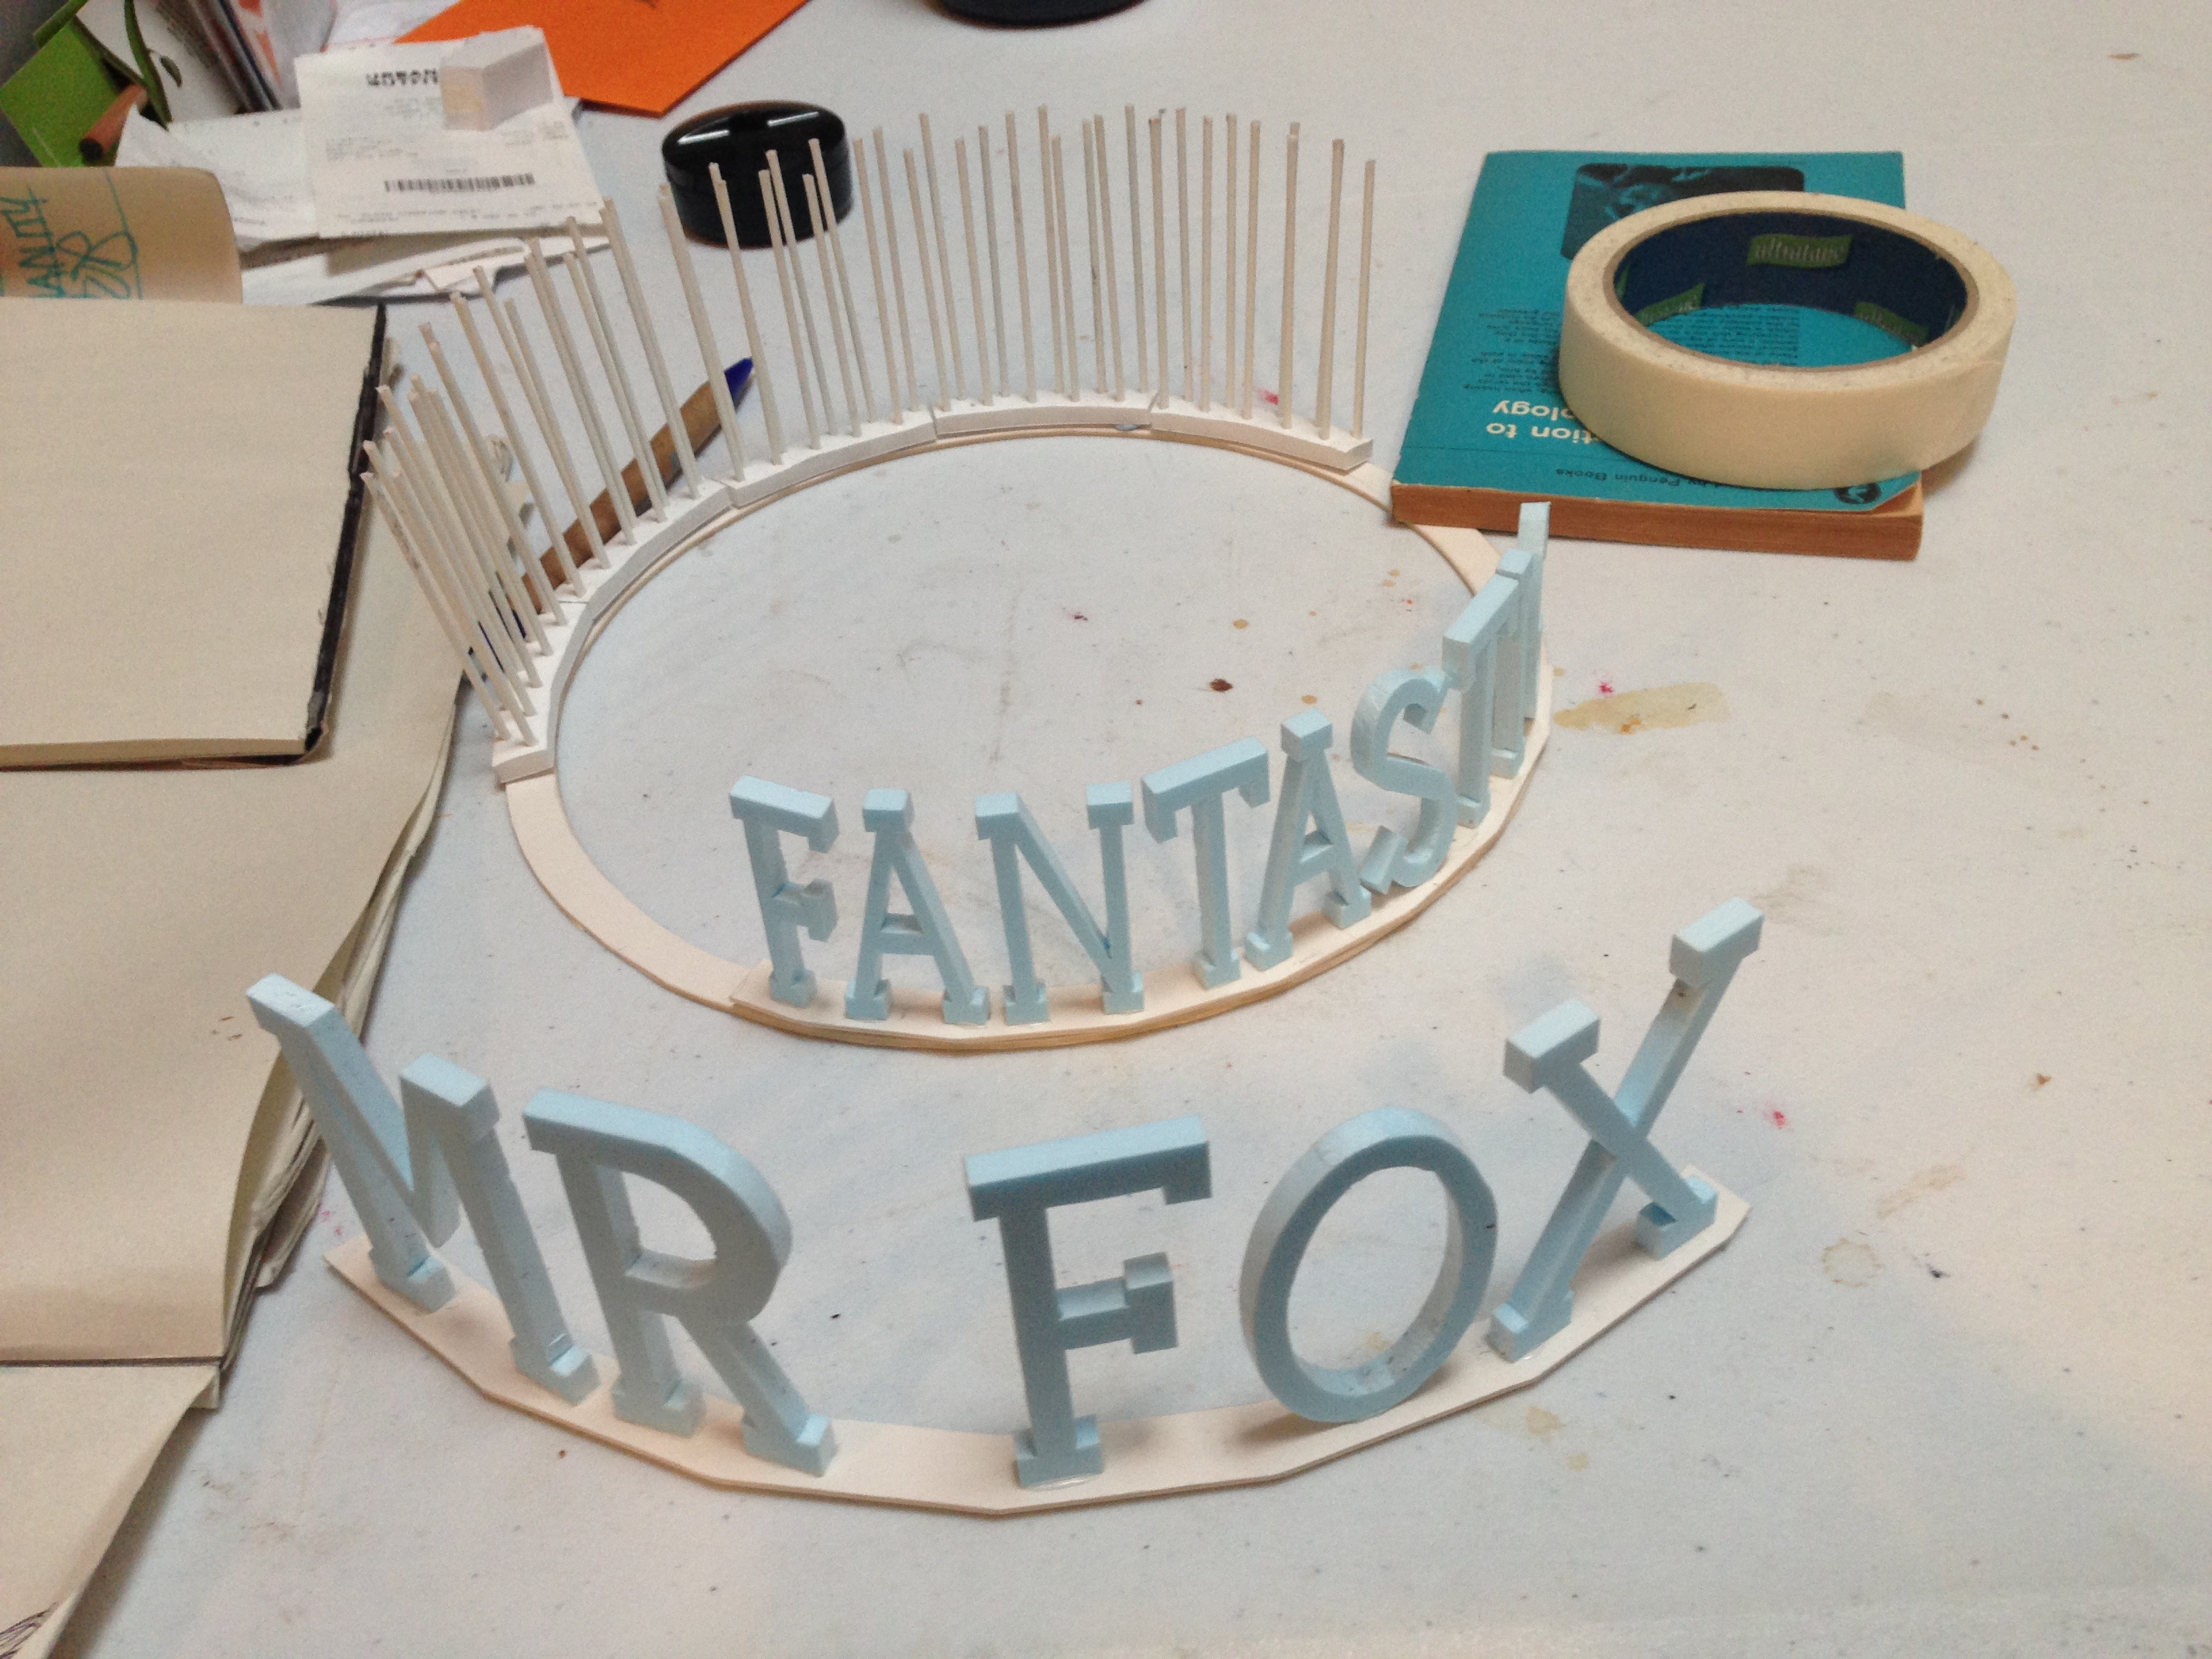 FANTASTIC MR FOX - model